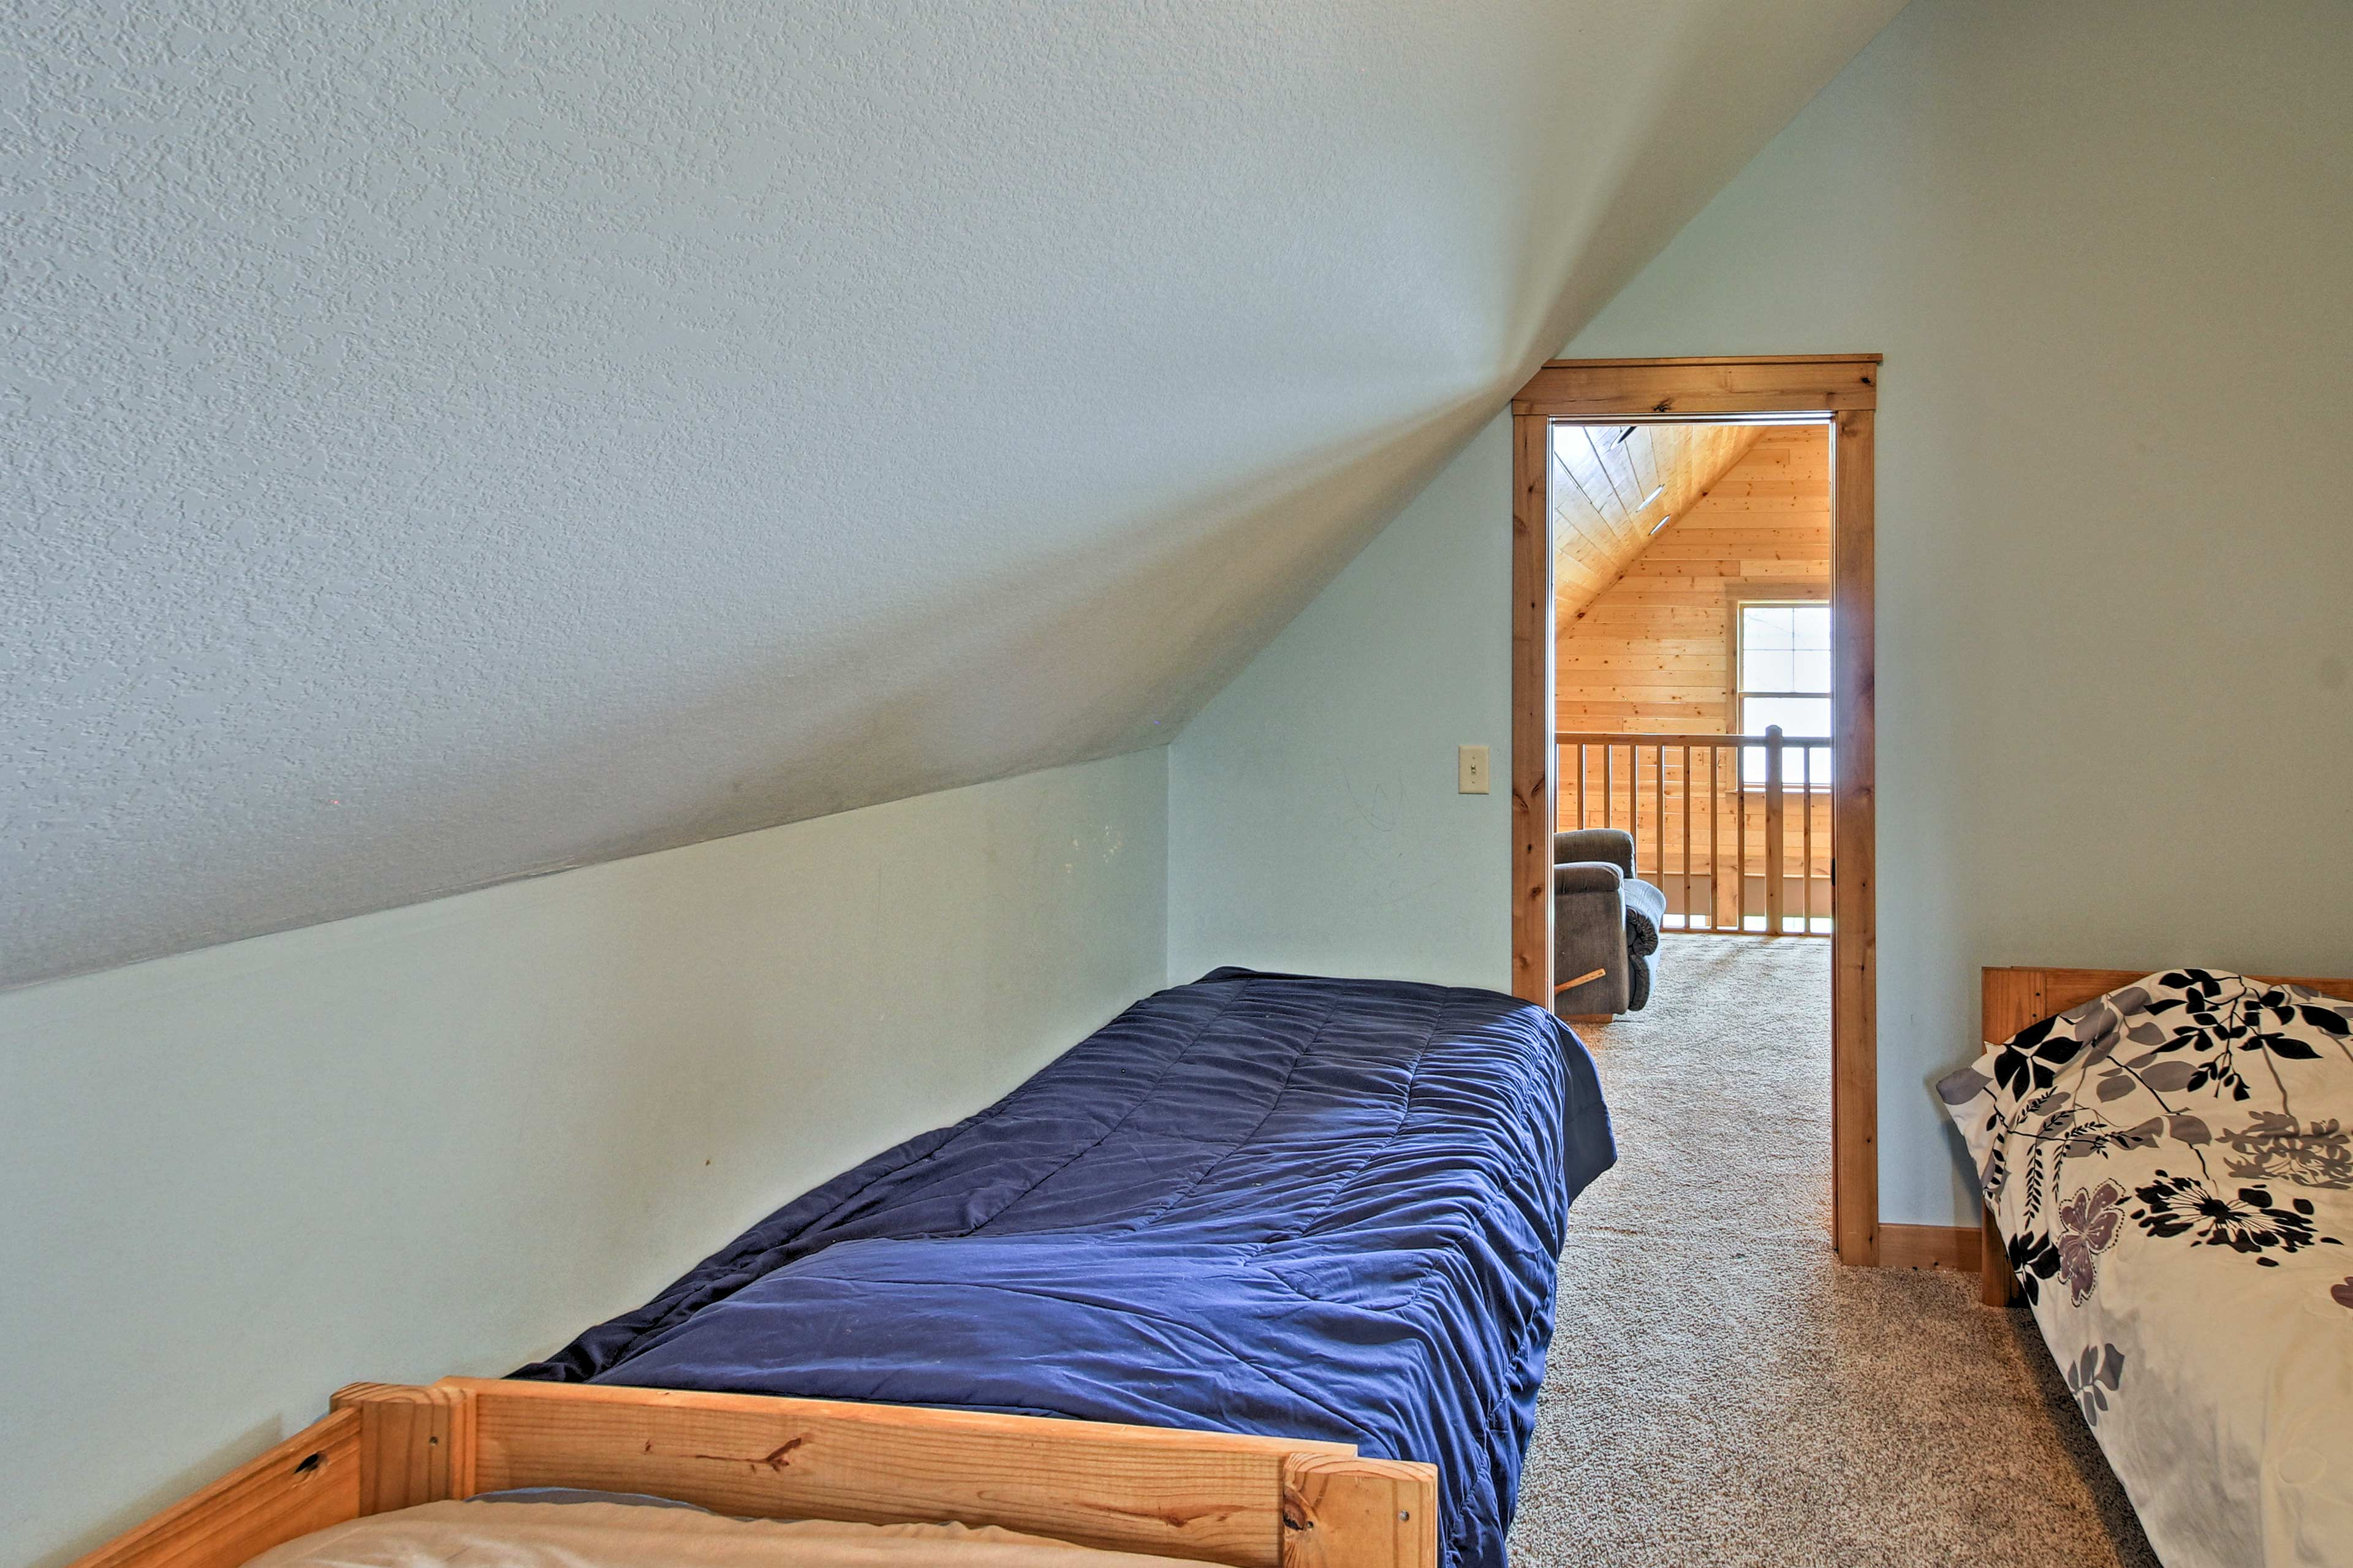 The third bedroom also offers 2 twin beds and a full bed.